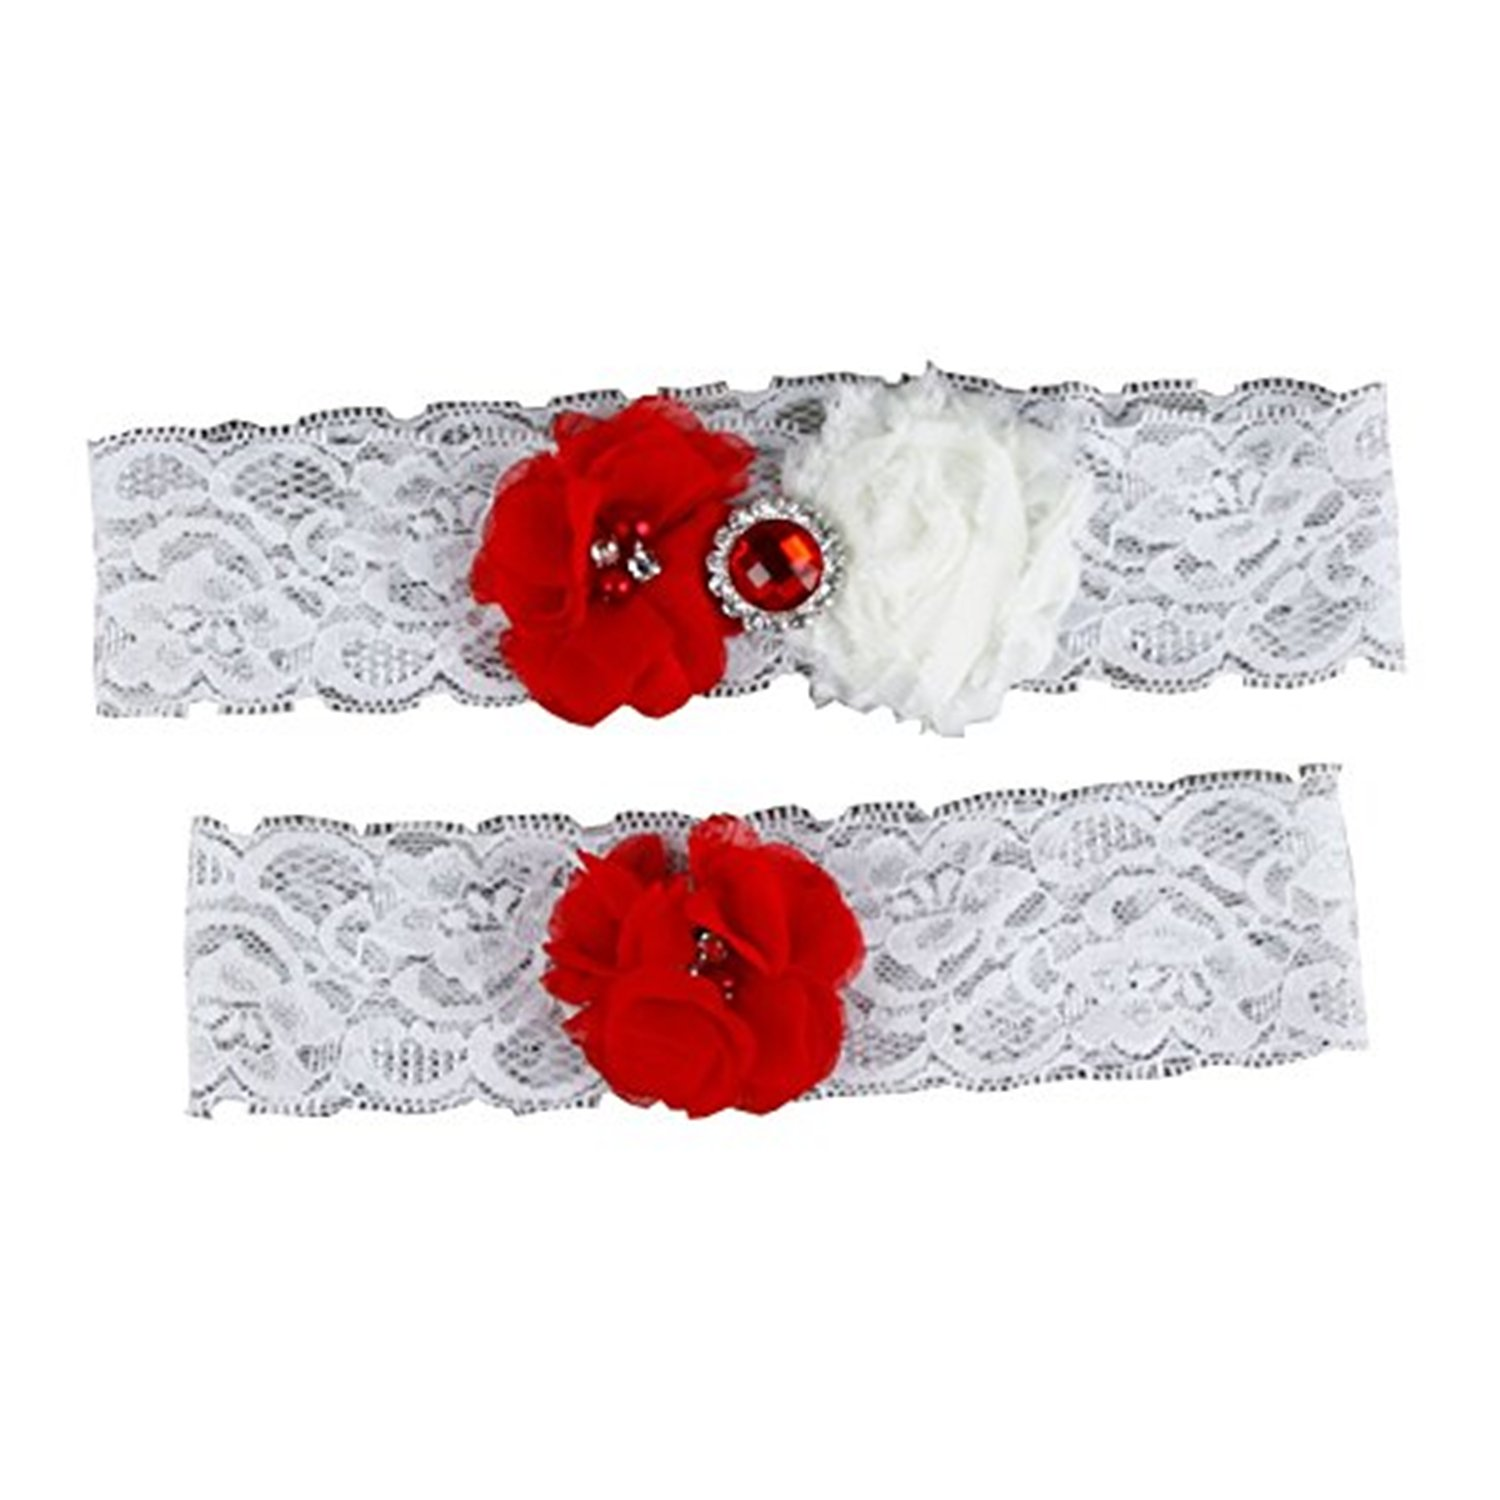 Kawayi Maidian Women's Lace Wedding Bridal Garter Set 2 Piece with Flowers and Pearls